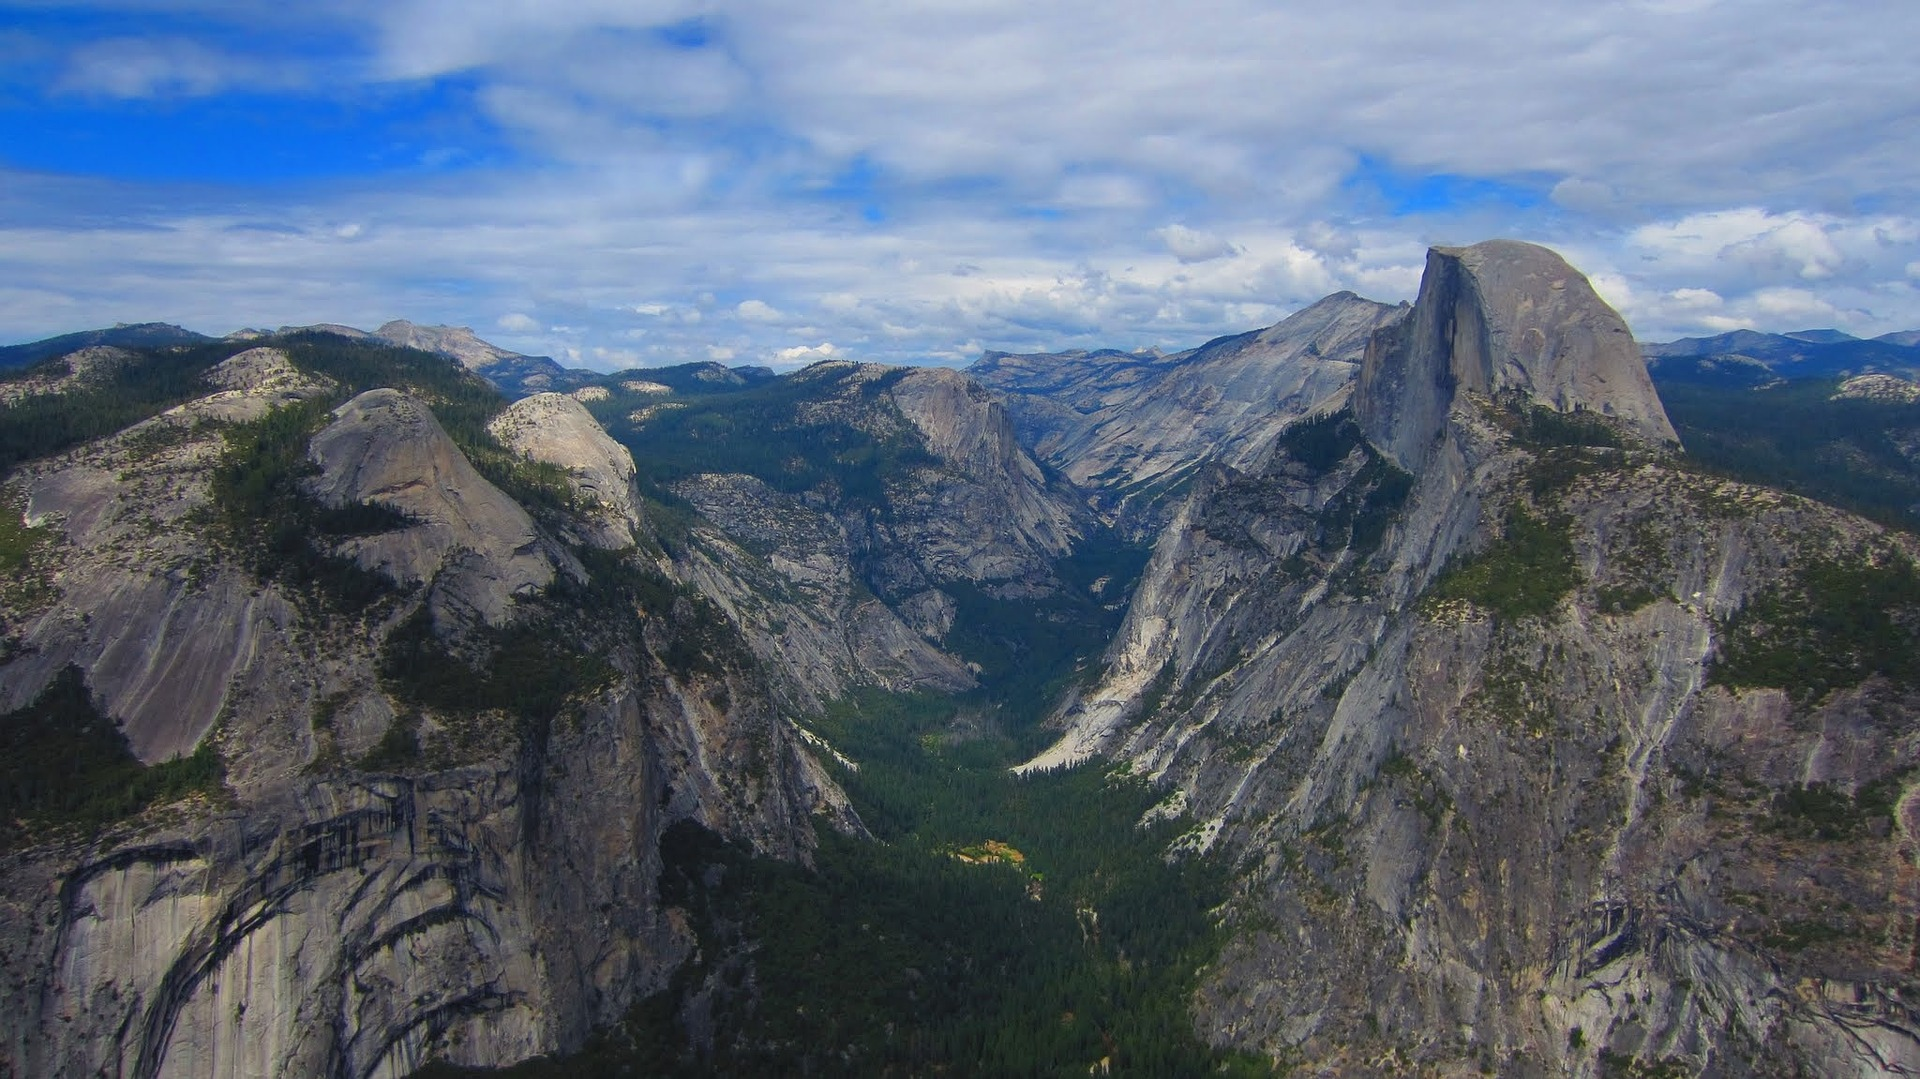 This photo and the one above of El Capitan are both used by permission, courtesy of  pixabay.com .